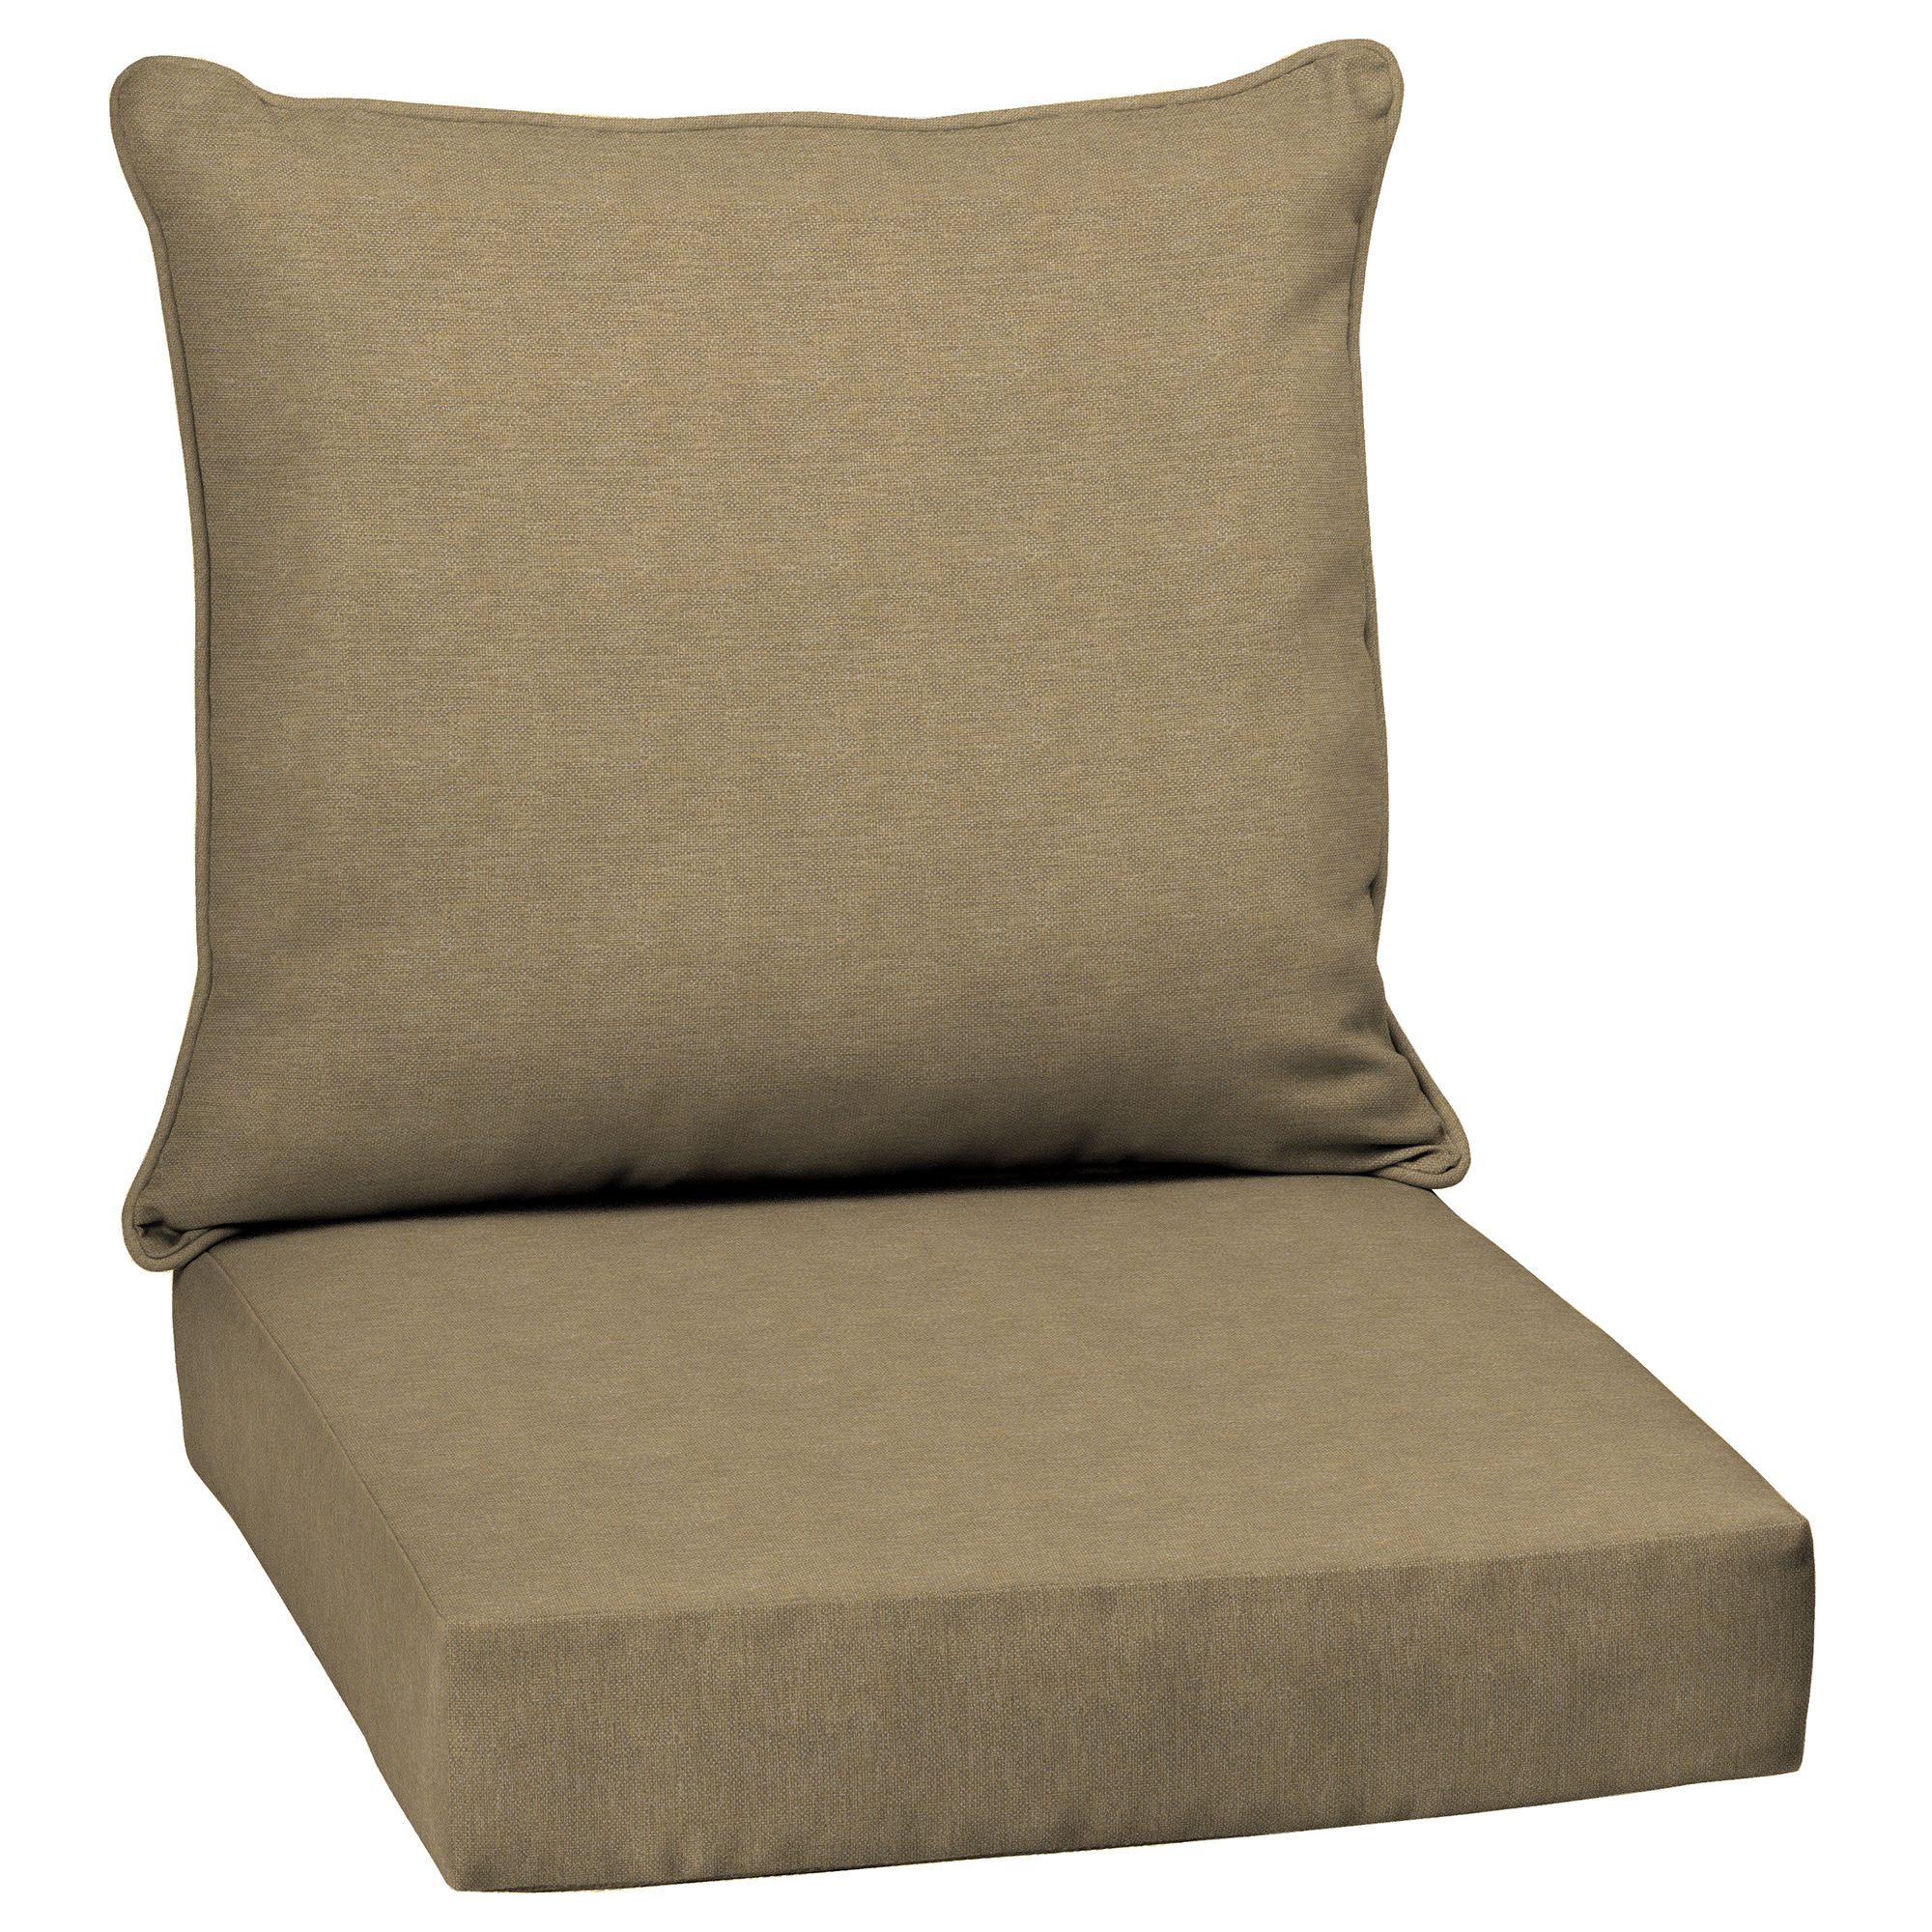 Arden Selections Denim Alair Olefin 46.5 x 24 in. Outdoor Deep Seat Cushion Set